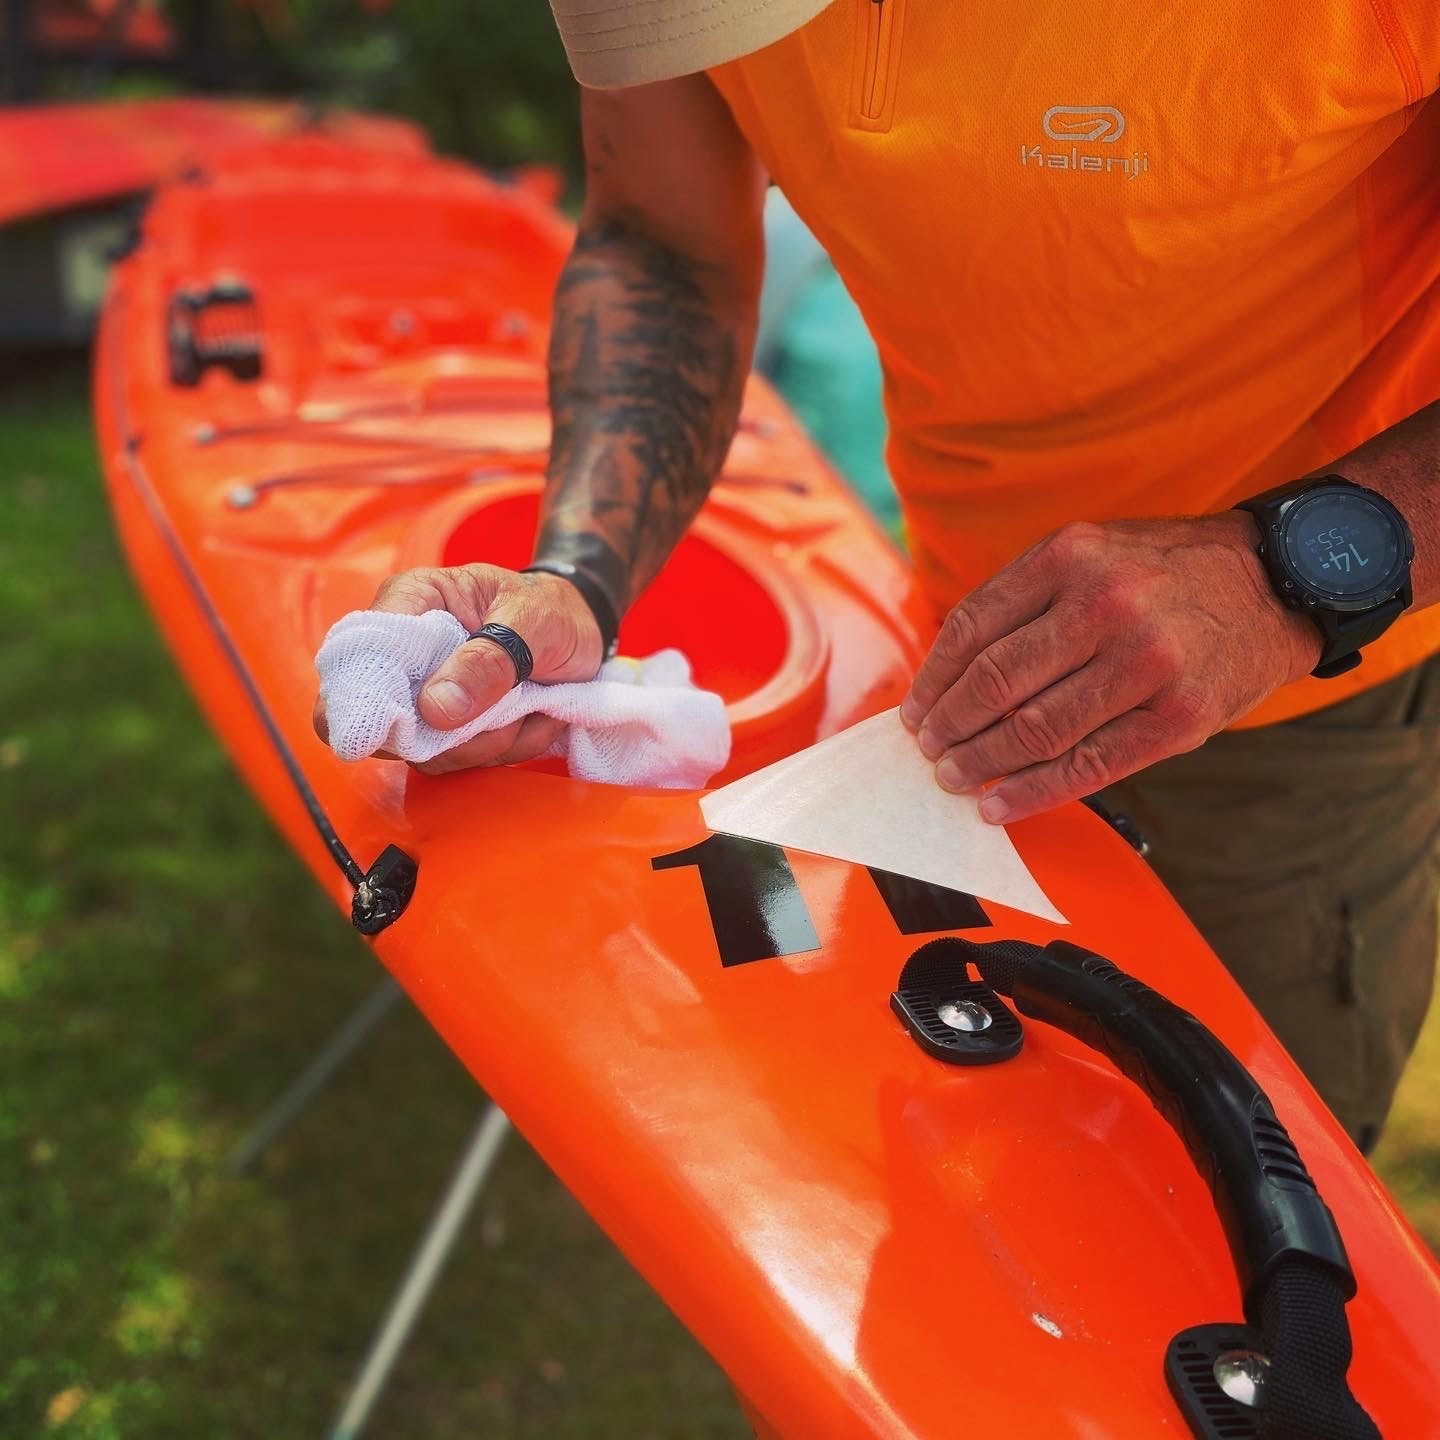 Guide maintaining servicing sit-on-top kayaks